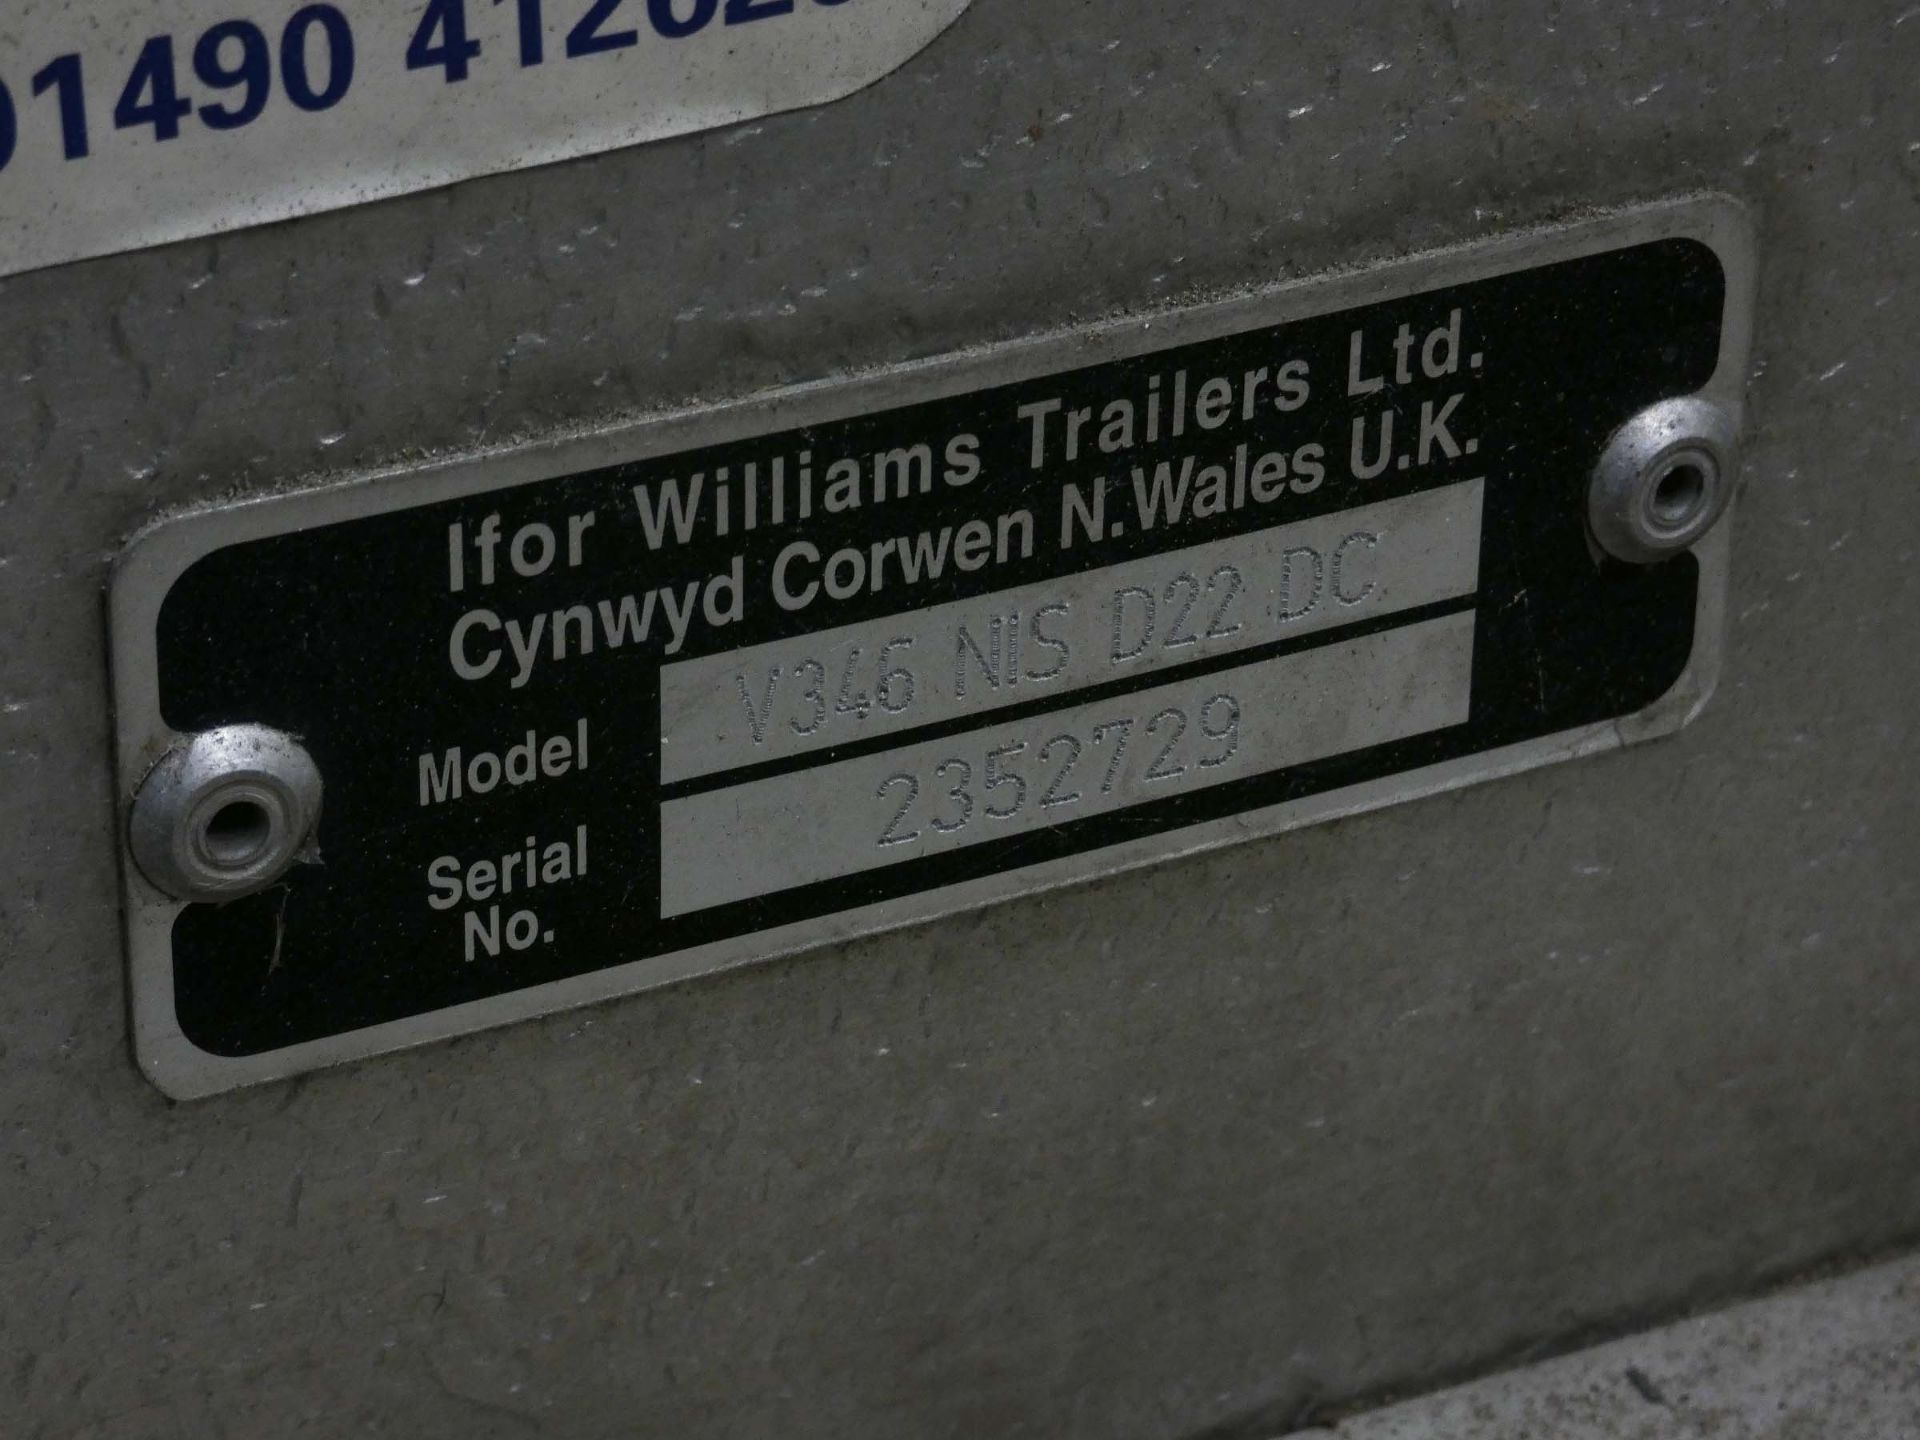 Lot 4151 - Ifor Williams truck canopy, Model V346 NIS D22DC Serial # 2352729